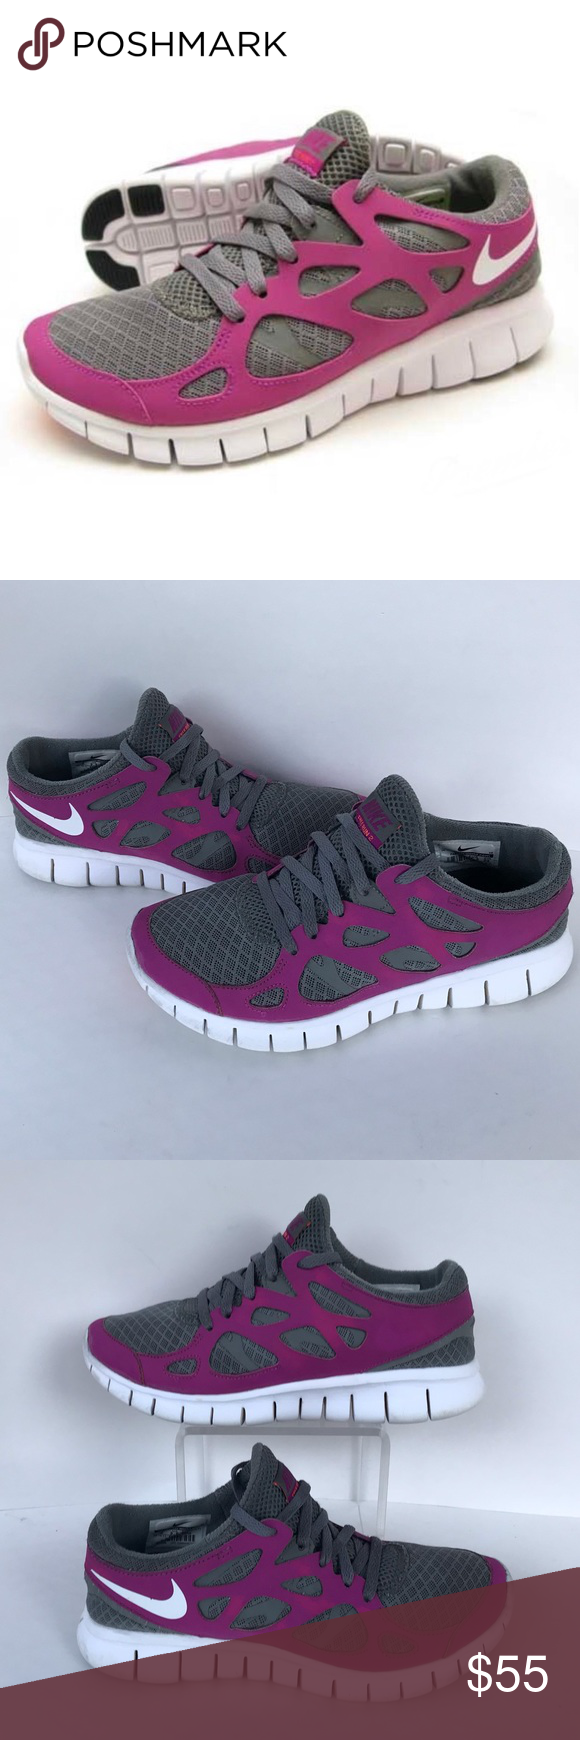 buy popular 7e09f 4130b Nike Free Run 2 Athletic Running Shoes Size 6 Great Used ...